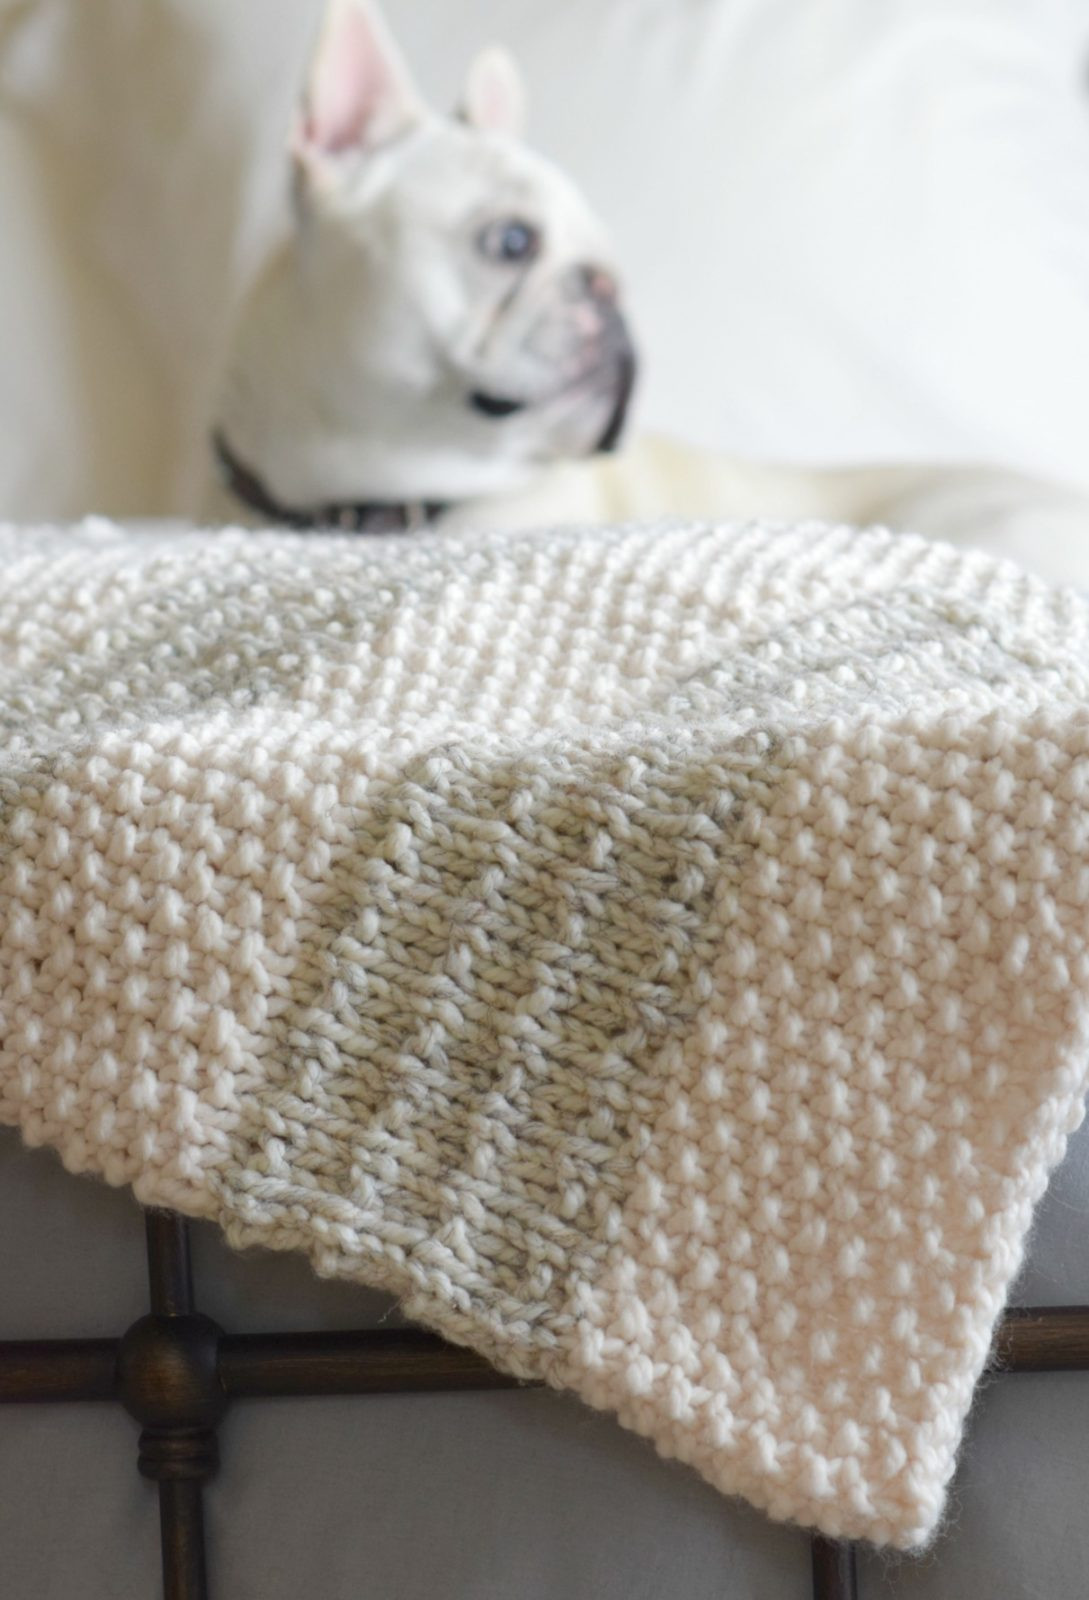 Easy Knitting Patterns Awesome Easy Heirloom Knit Blanket Pattern – Mama In A Stitch Of Superb 44 Ideas Easy Knitting Patterns